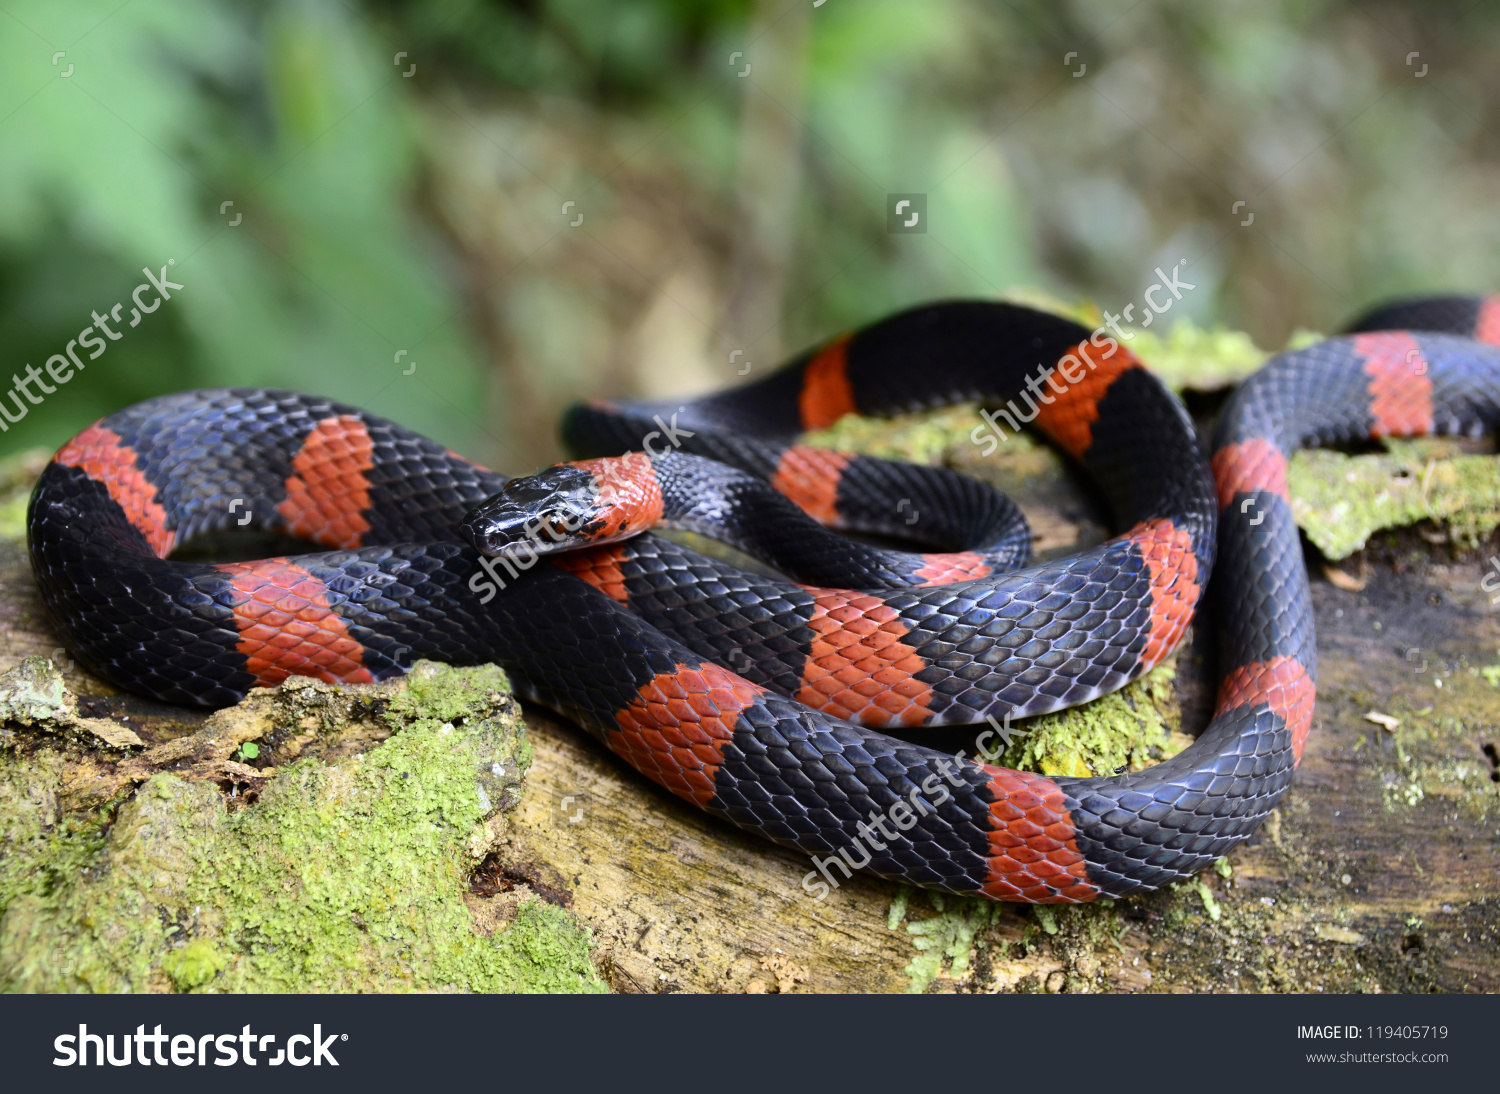 False Coral Snake clipart #3, Download drawings